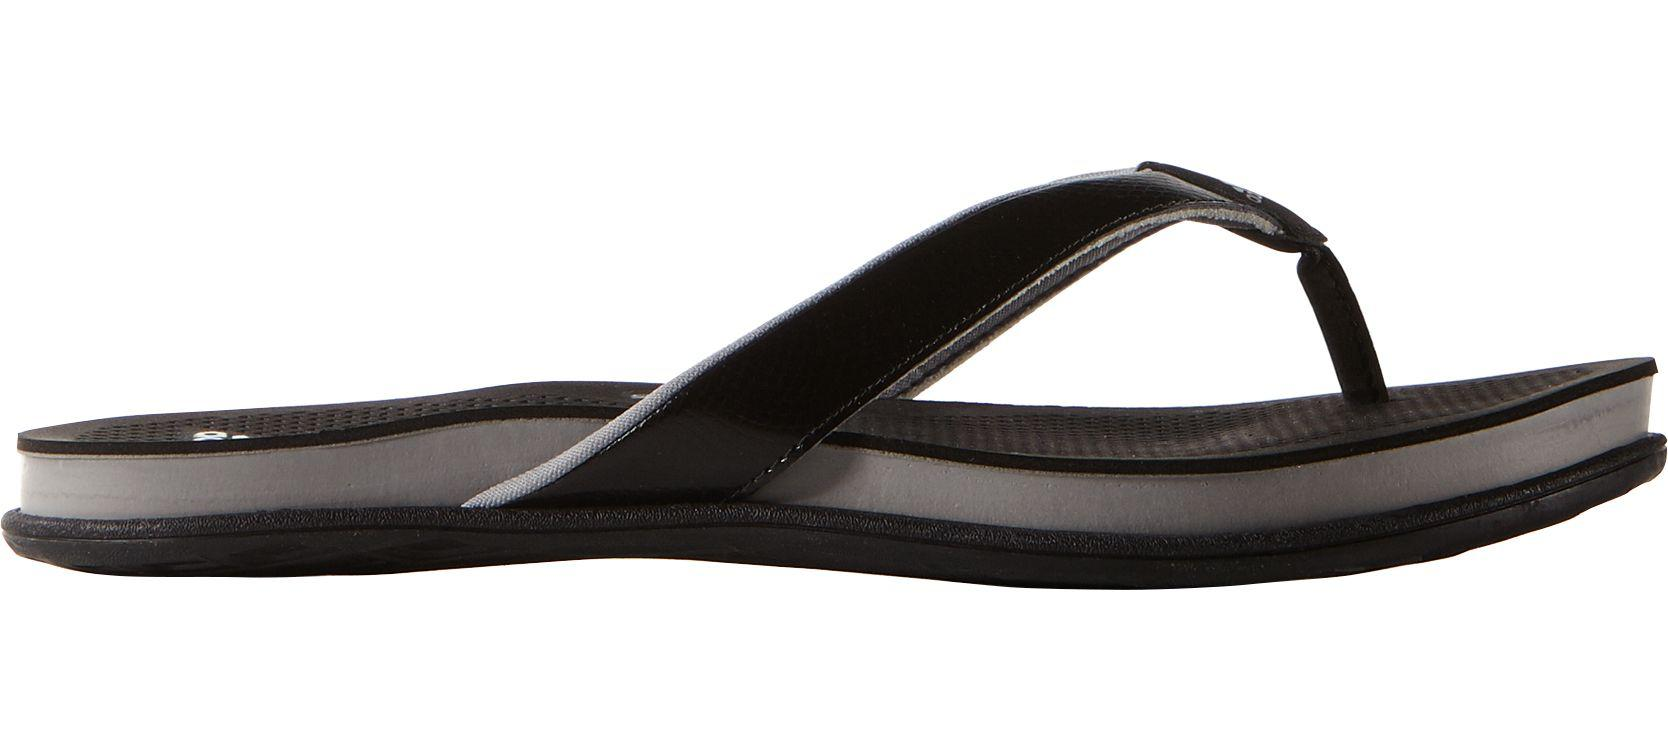 700c18f15ed Lyst - adidas Supercloud Plus Flip-flops in Black